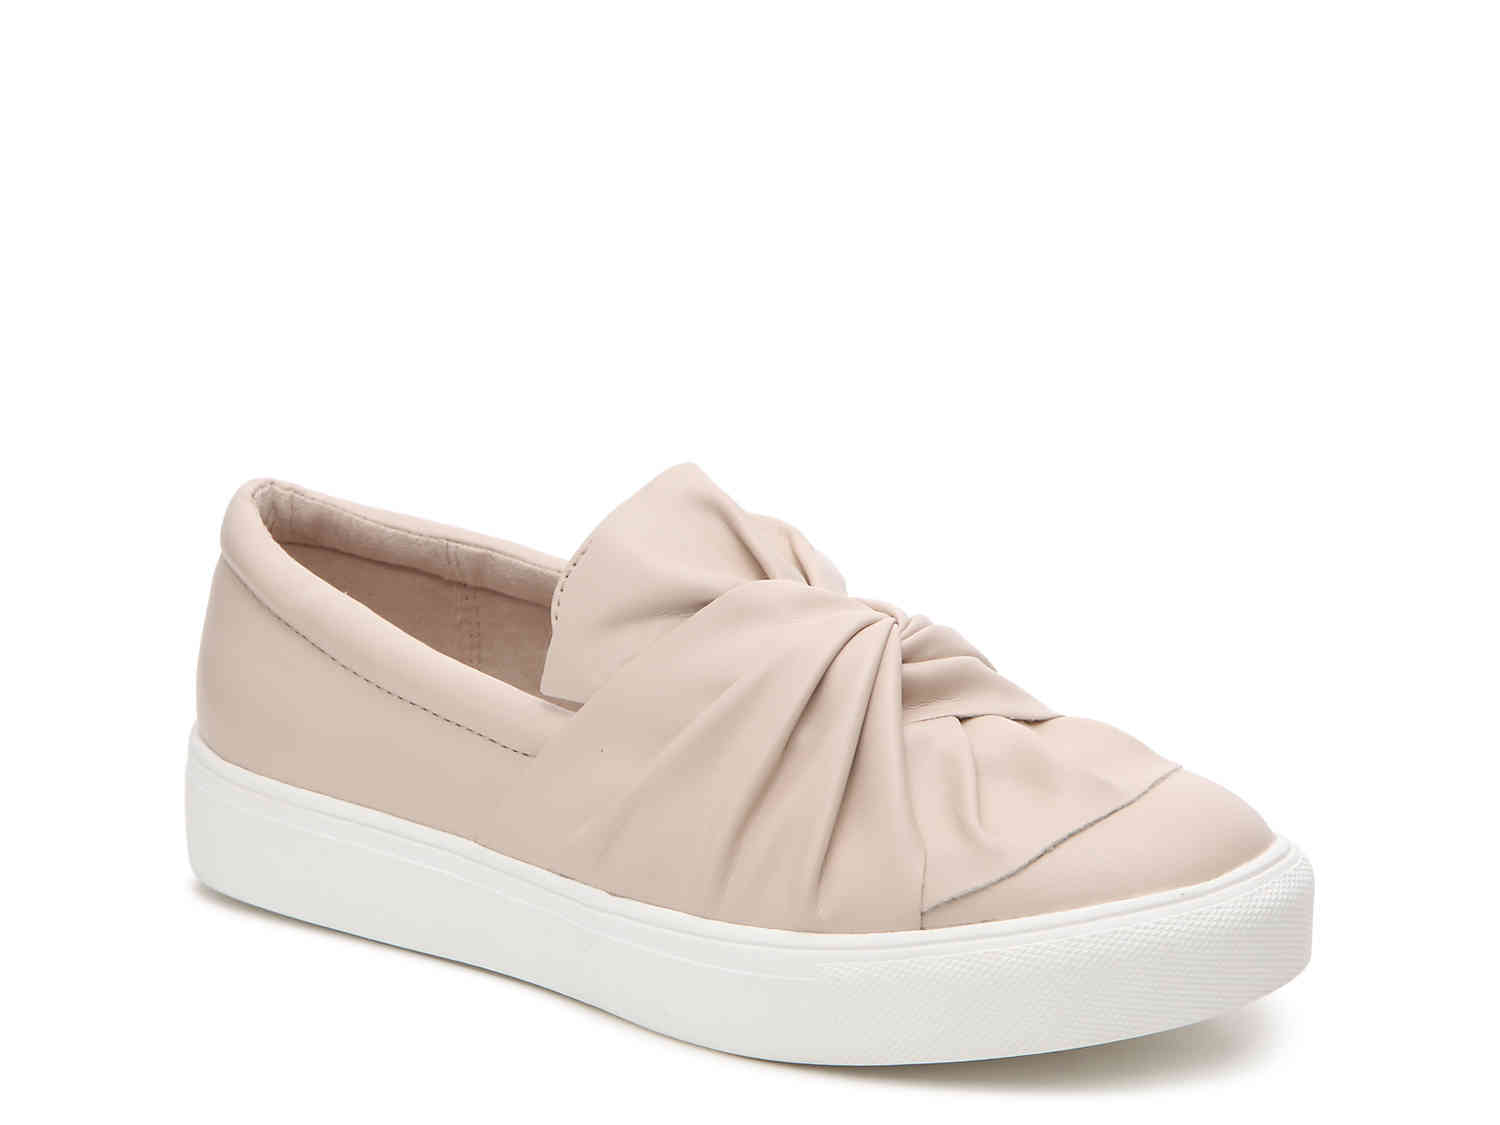 BOW SLIP ONS - Bow wrap sneakers